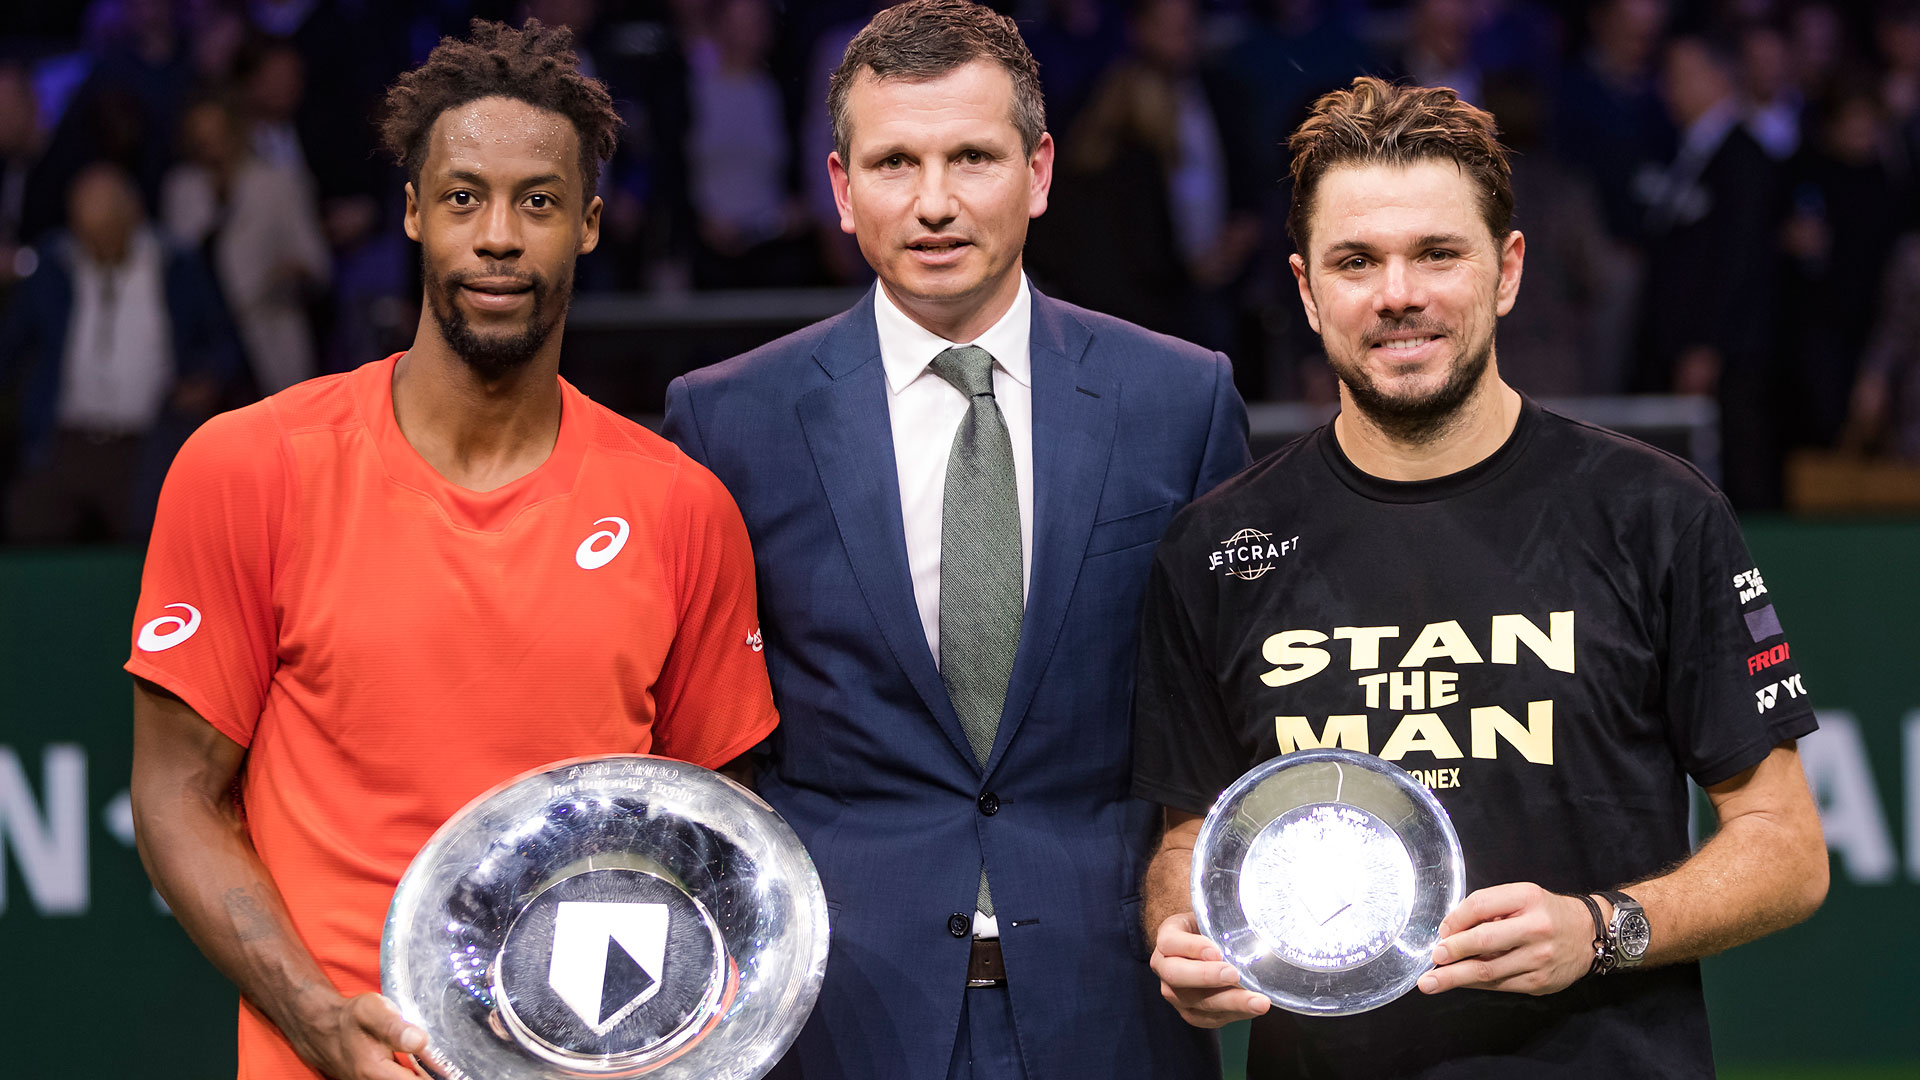 Gael Monfils beat Stan Wawrinka (right) in the 2019 ABN AMRO World Tennis Tournament final. They pose for photos with Tournament Director Richard Krajicek.